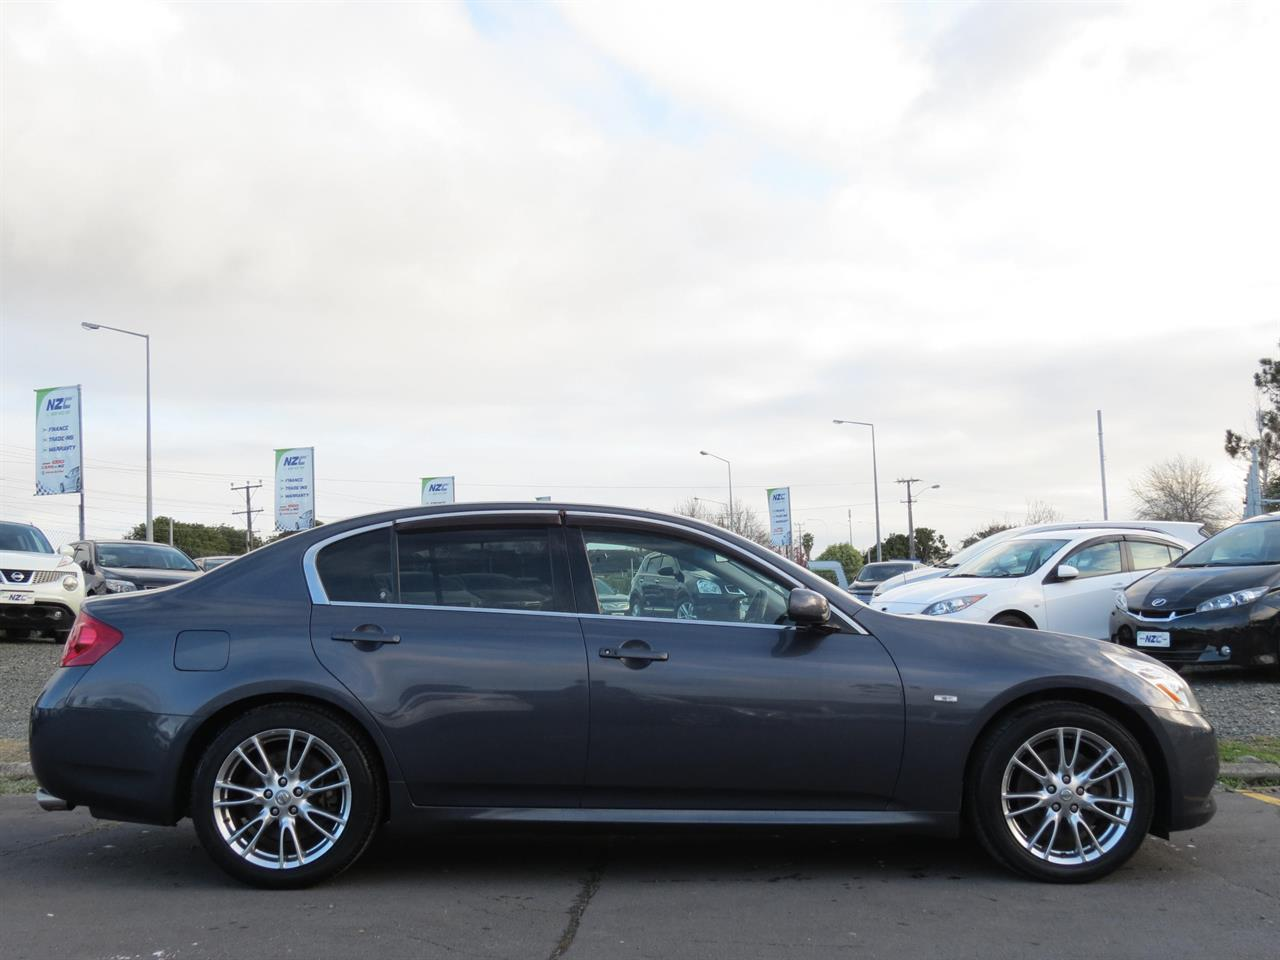 2008 Nissan Skyline | only $40 weekly